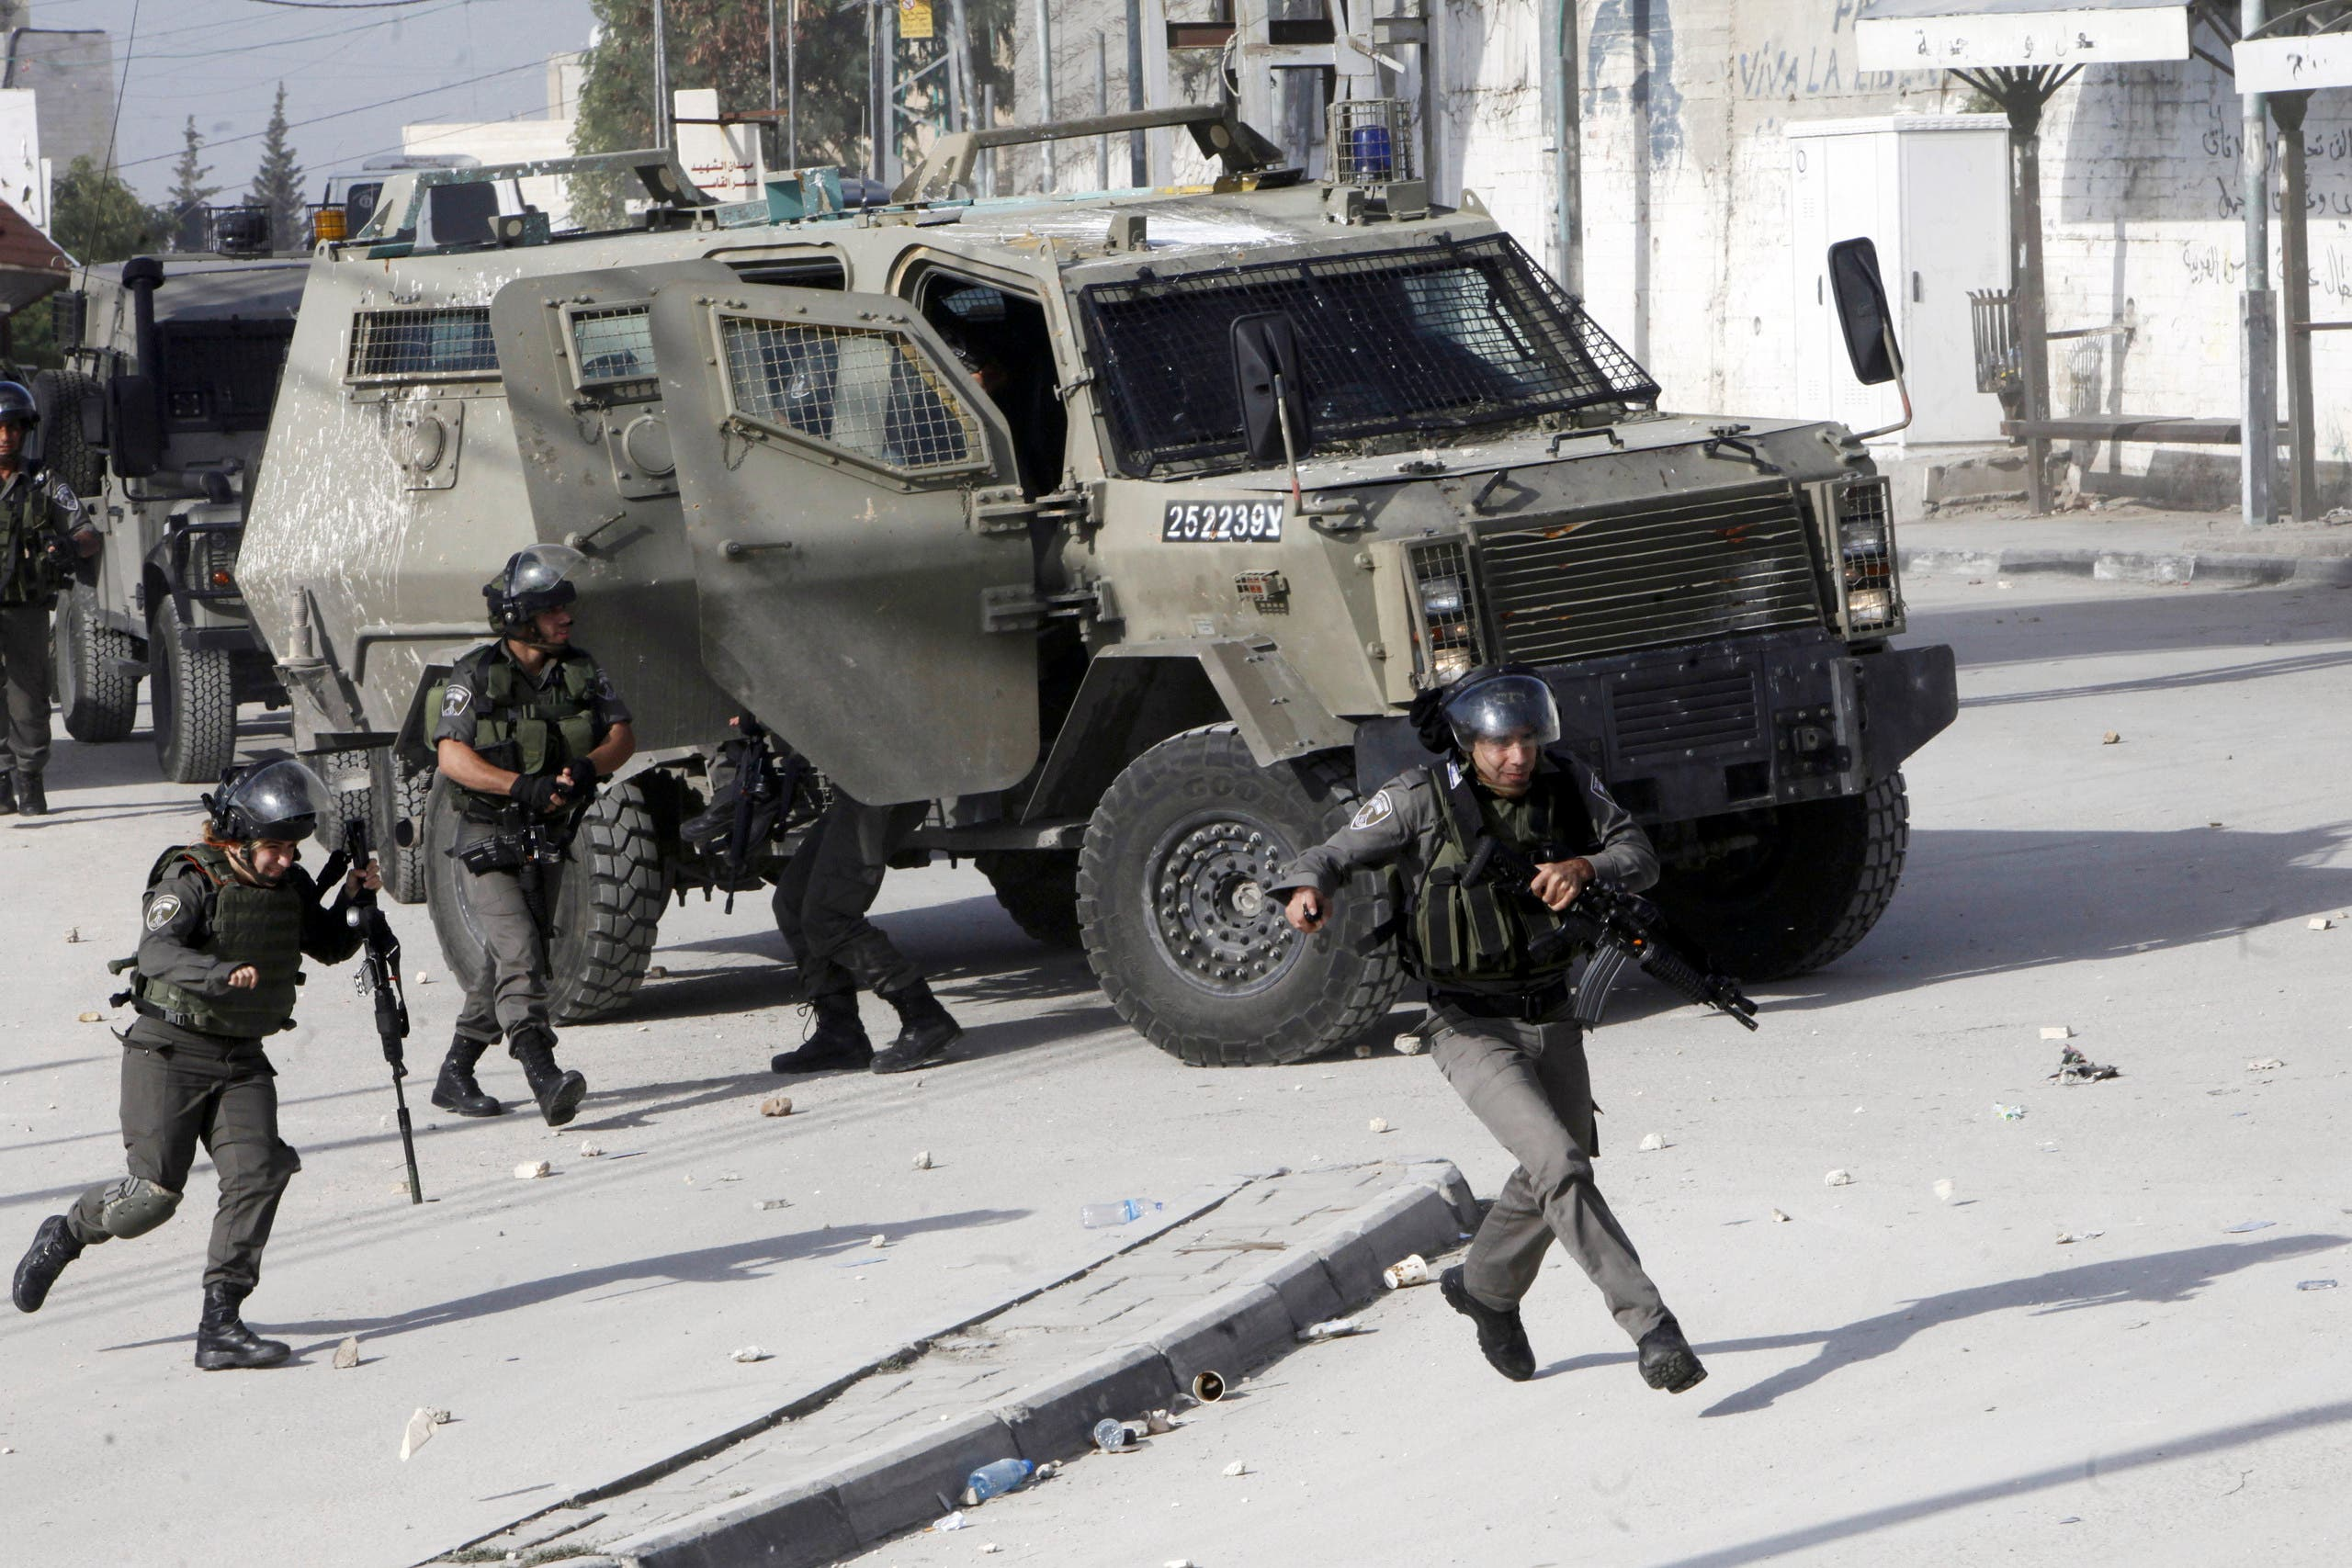 Israeli border police run during clashes with Palestinian students in Abu Dis, West Bank on Nov. 2, 2015. (File photo: AP)